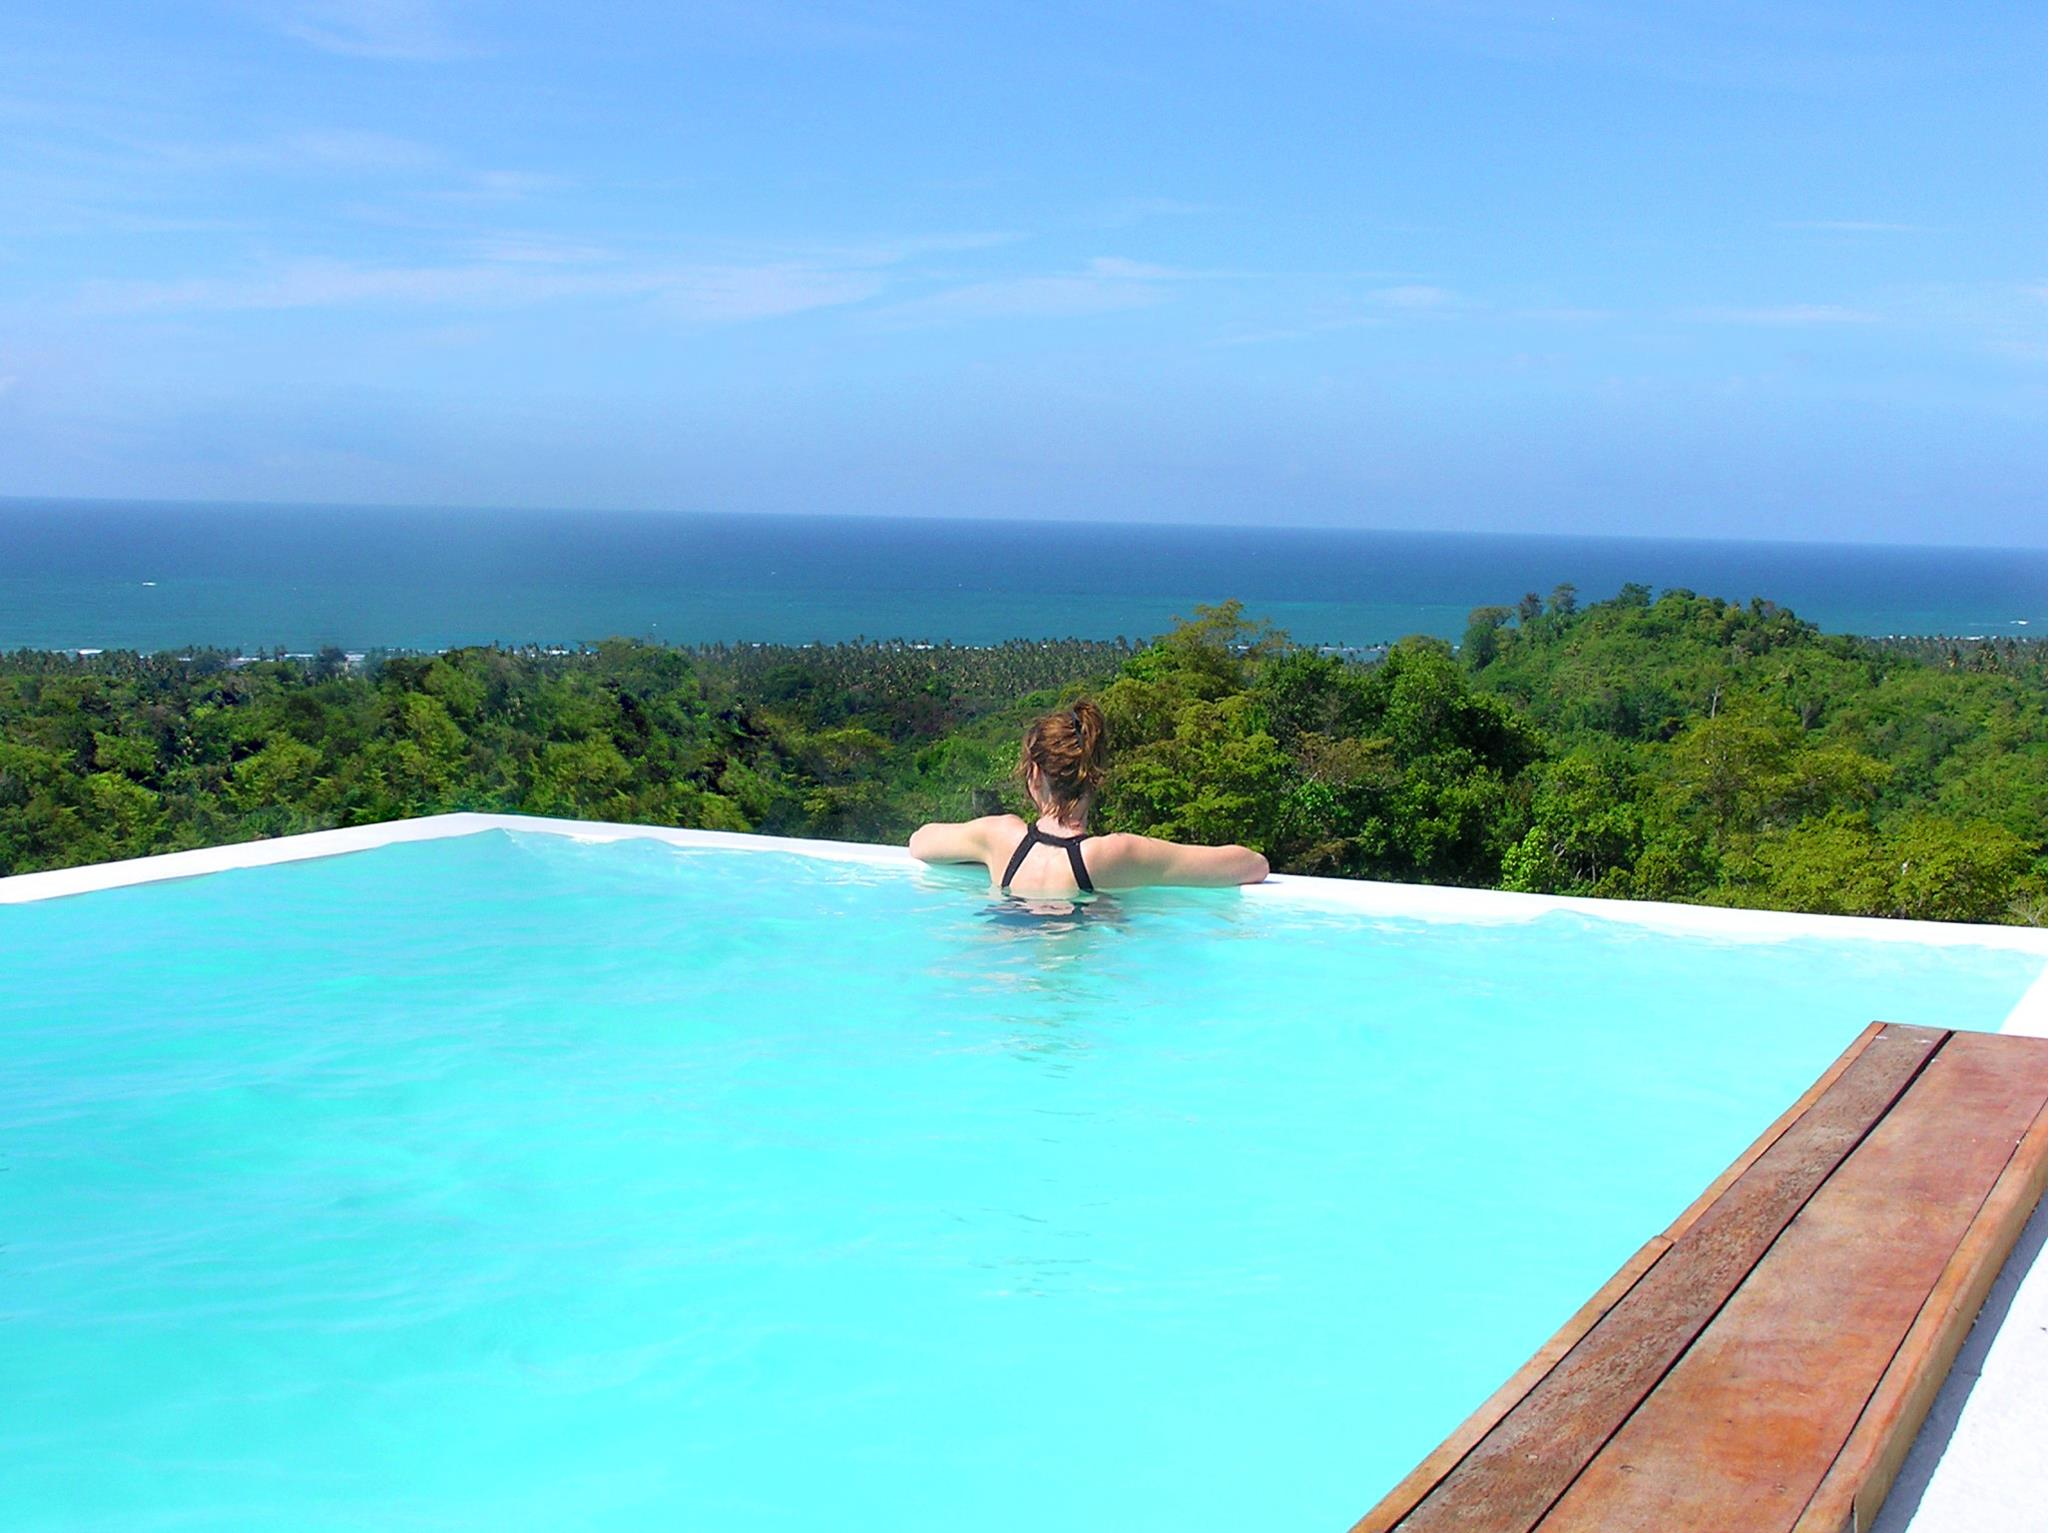 View from the Villa Arboleda pool overlooking the rainforest and out to the ocean